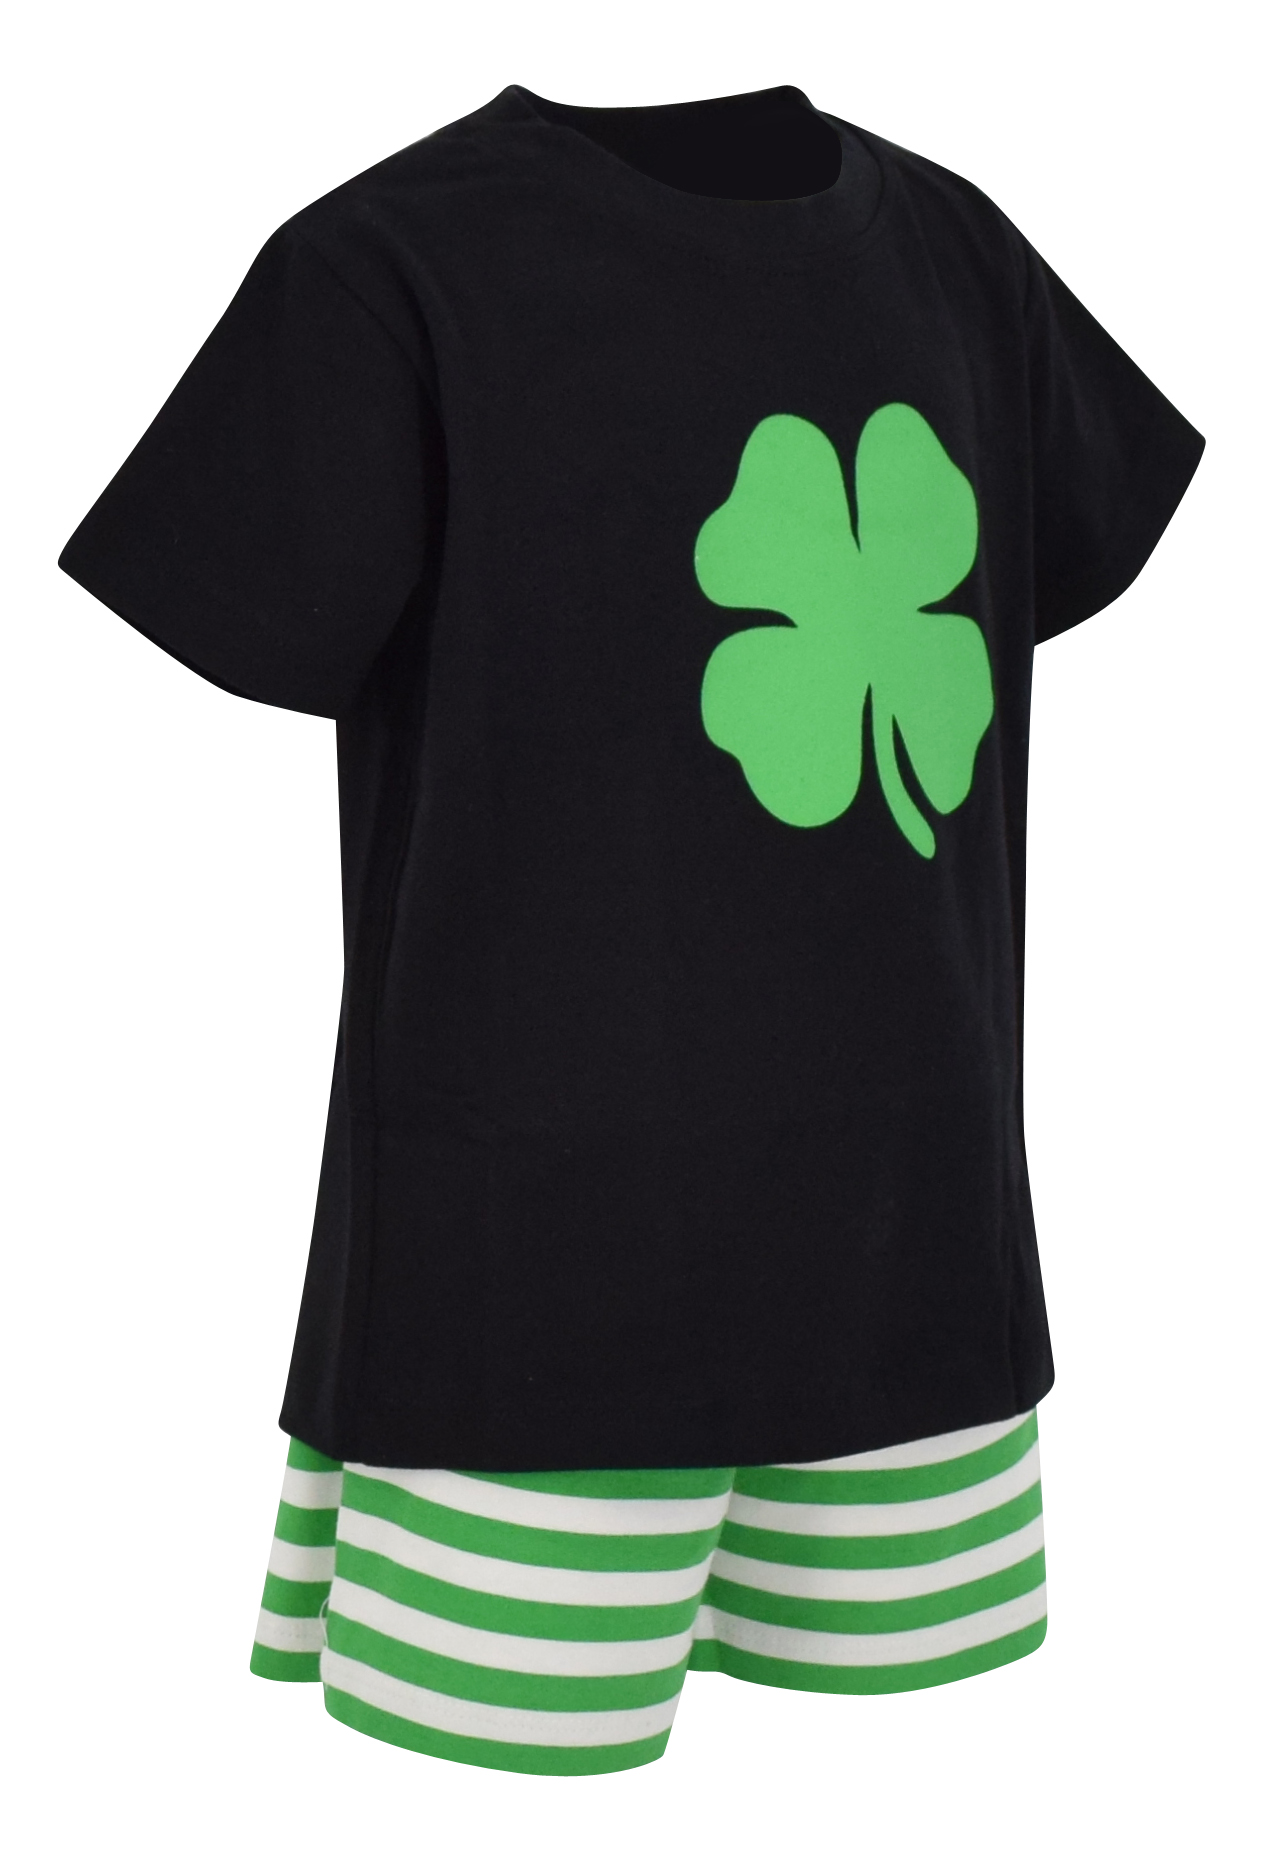 Boys-2-Piece-ST-Patricks-Day-Clover-Outfit-2t-3t-4t-5-6-7-8-Toddler-Kids-Clothes thumbnail 16